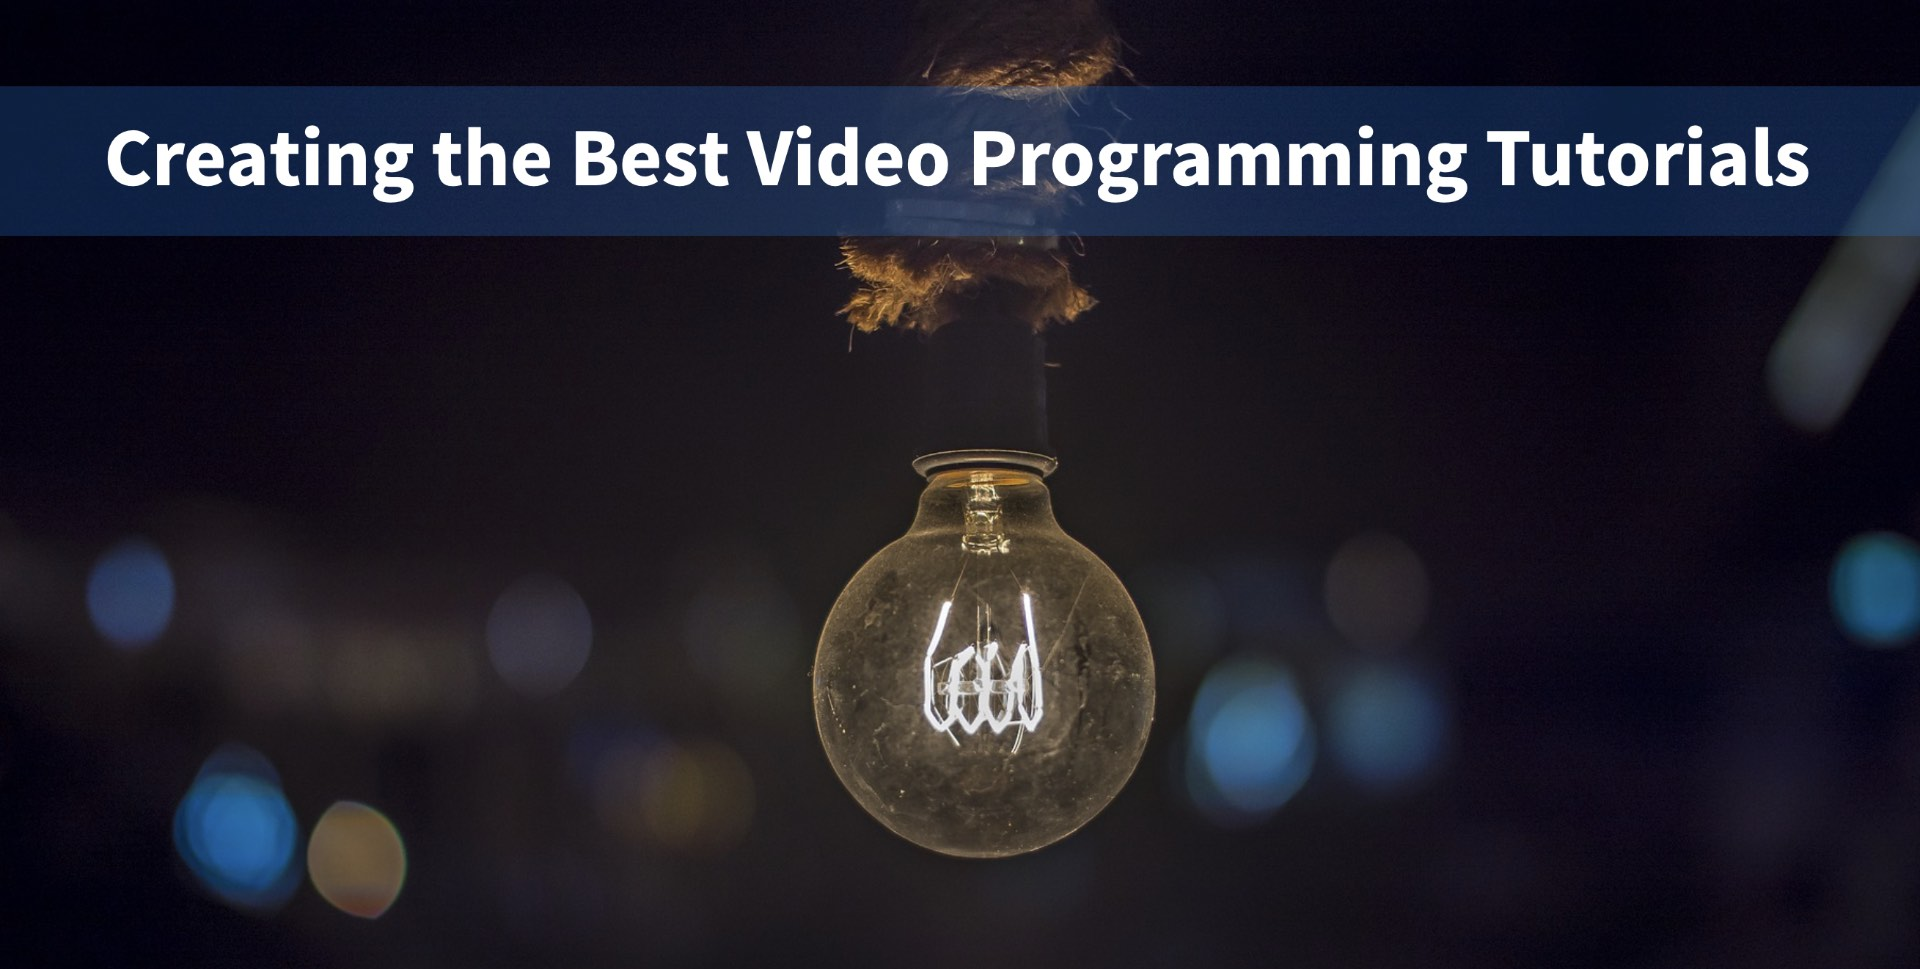 Creating the Best Video Programming Tutorials